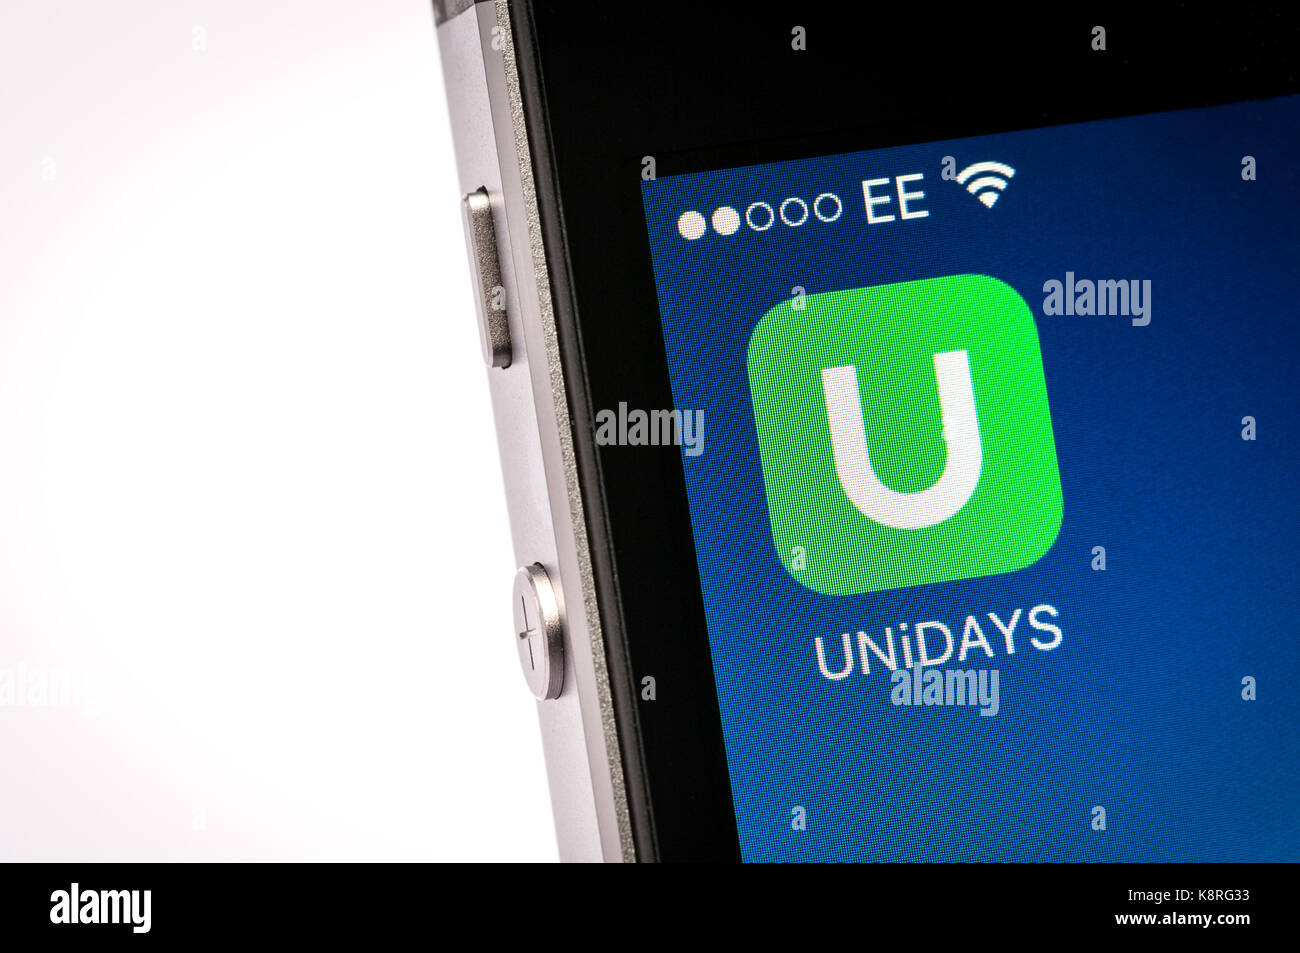 Unidays student discount app on an iPhone mobile phone - Stock Image